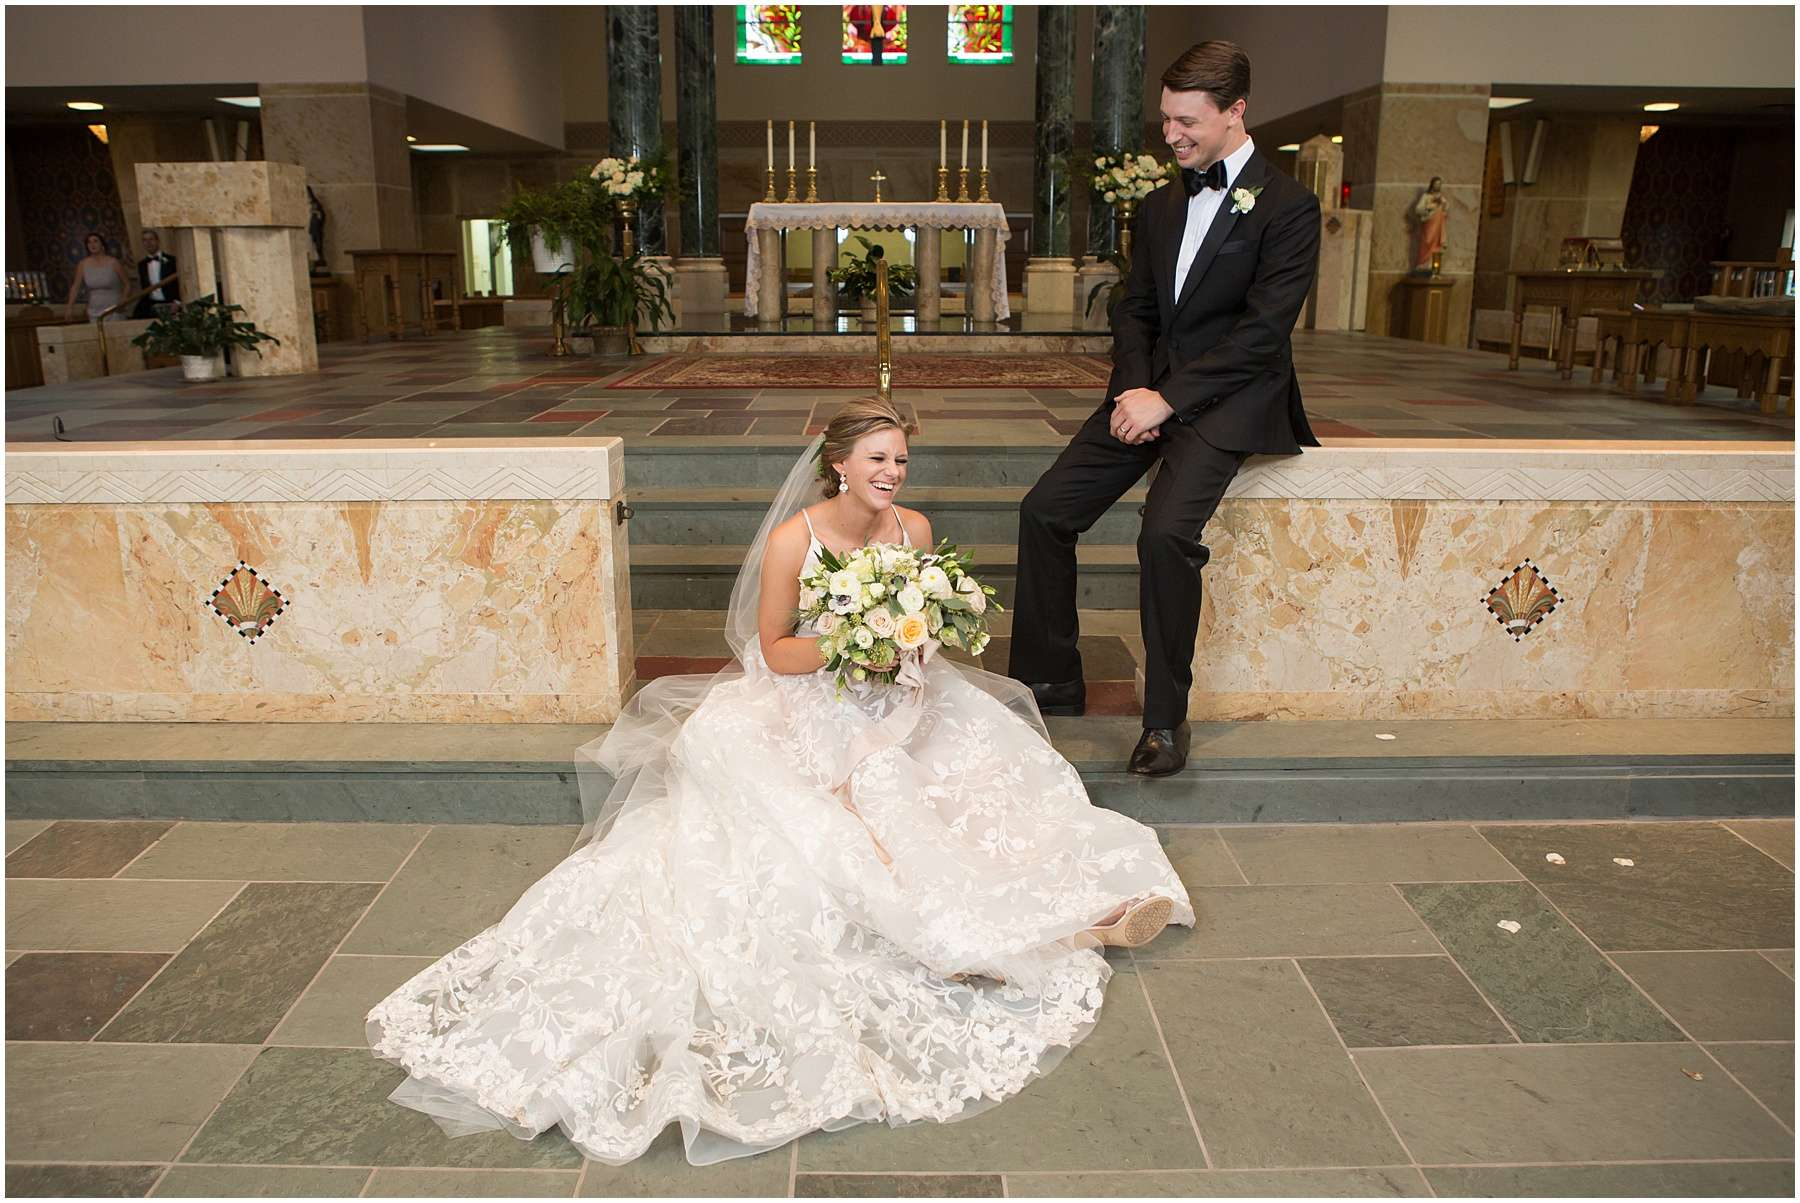 Wedding at the Ohio Statehouse | Columbus Ohio Weddings 134